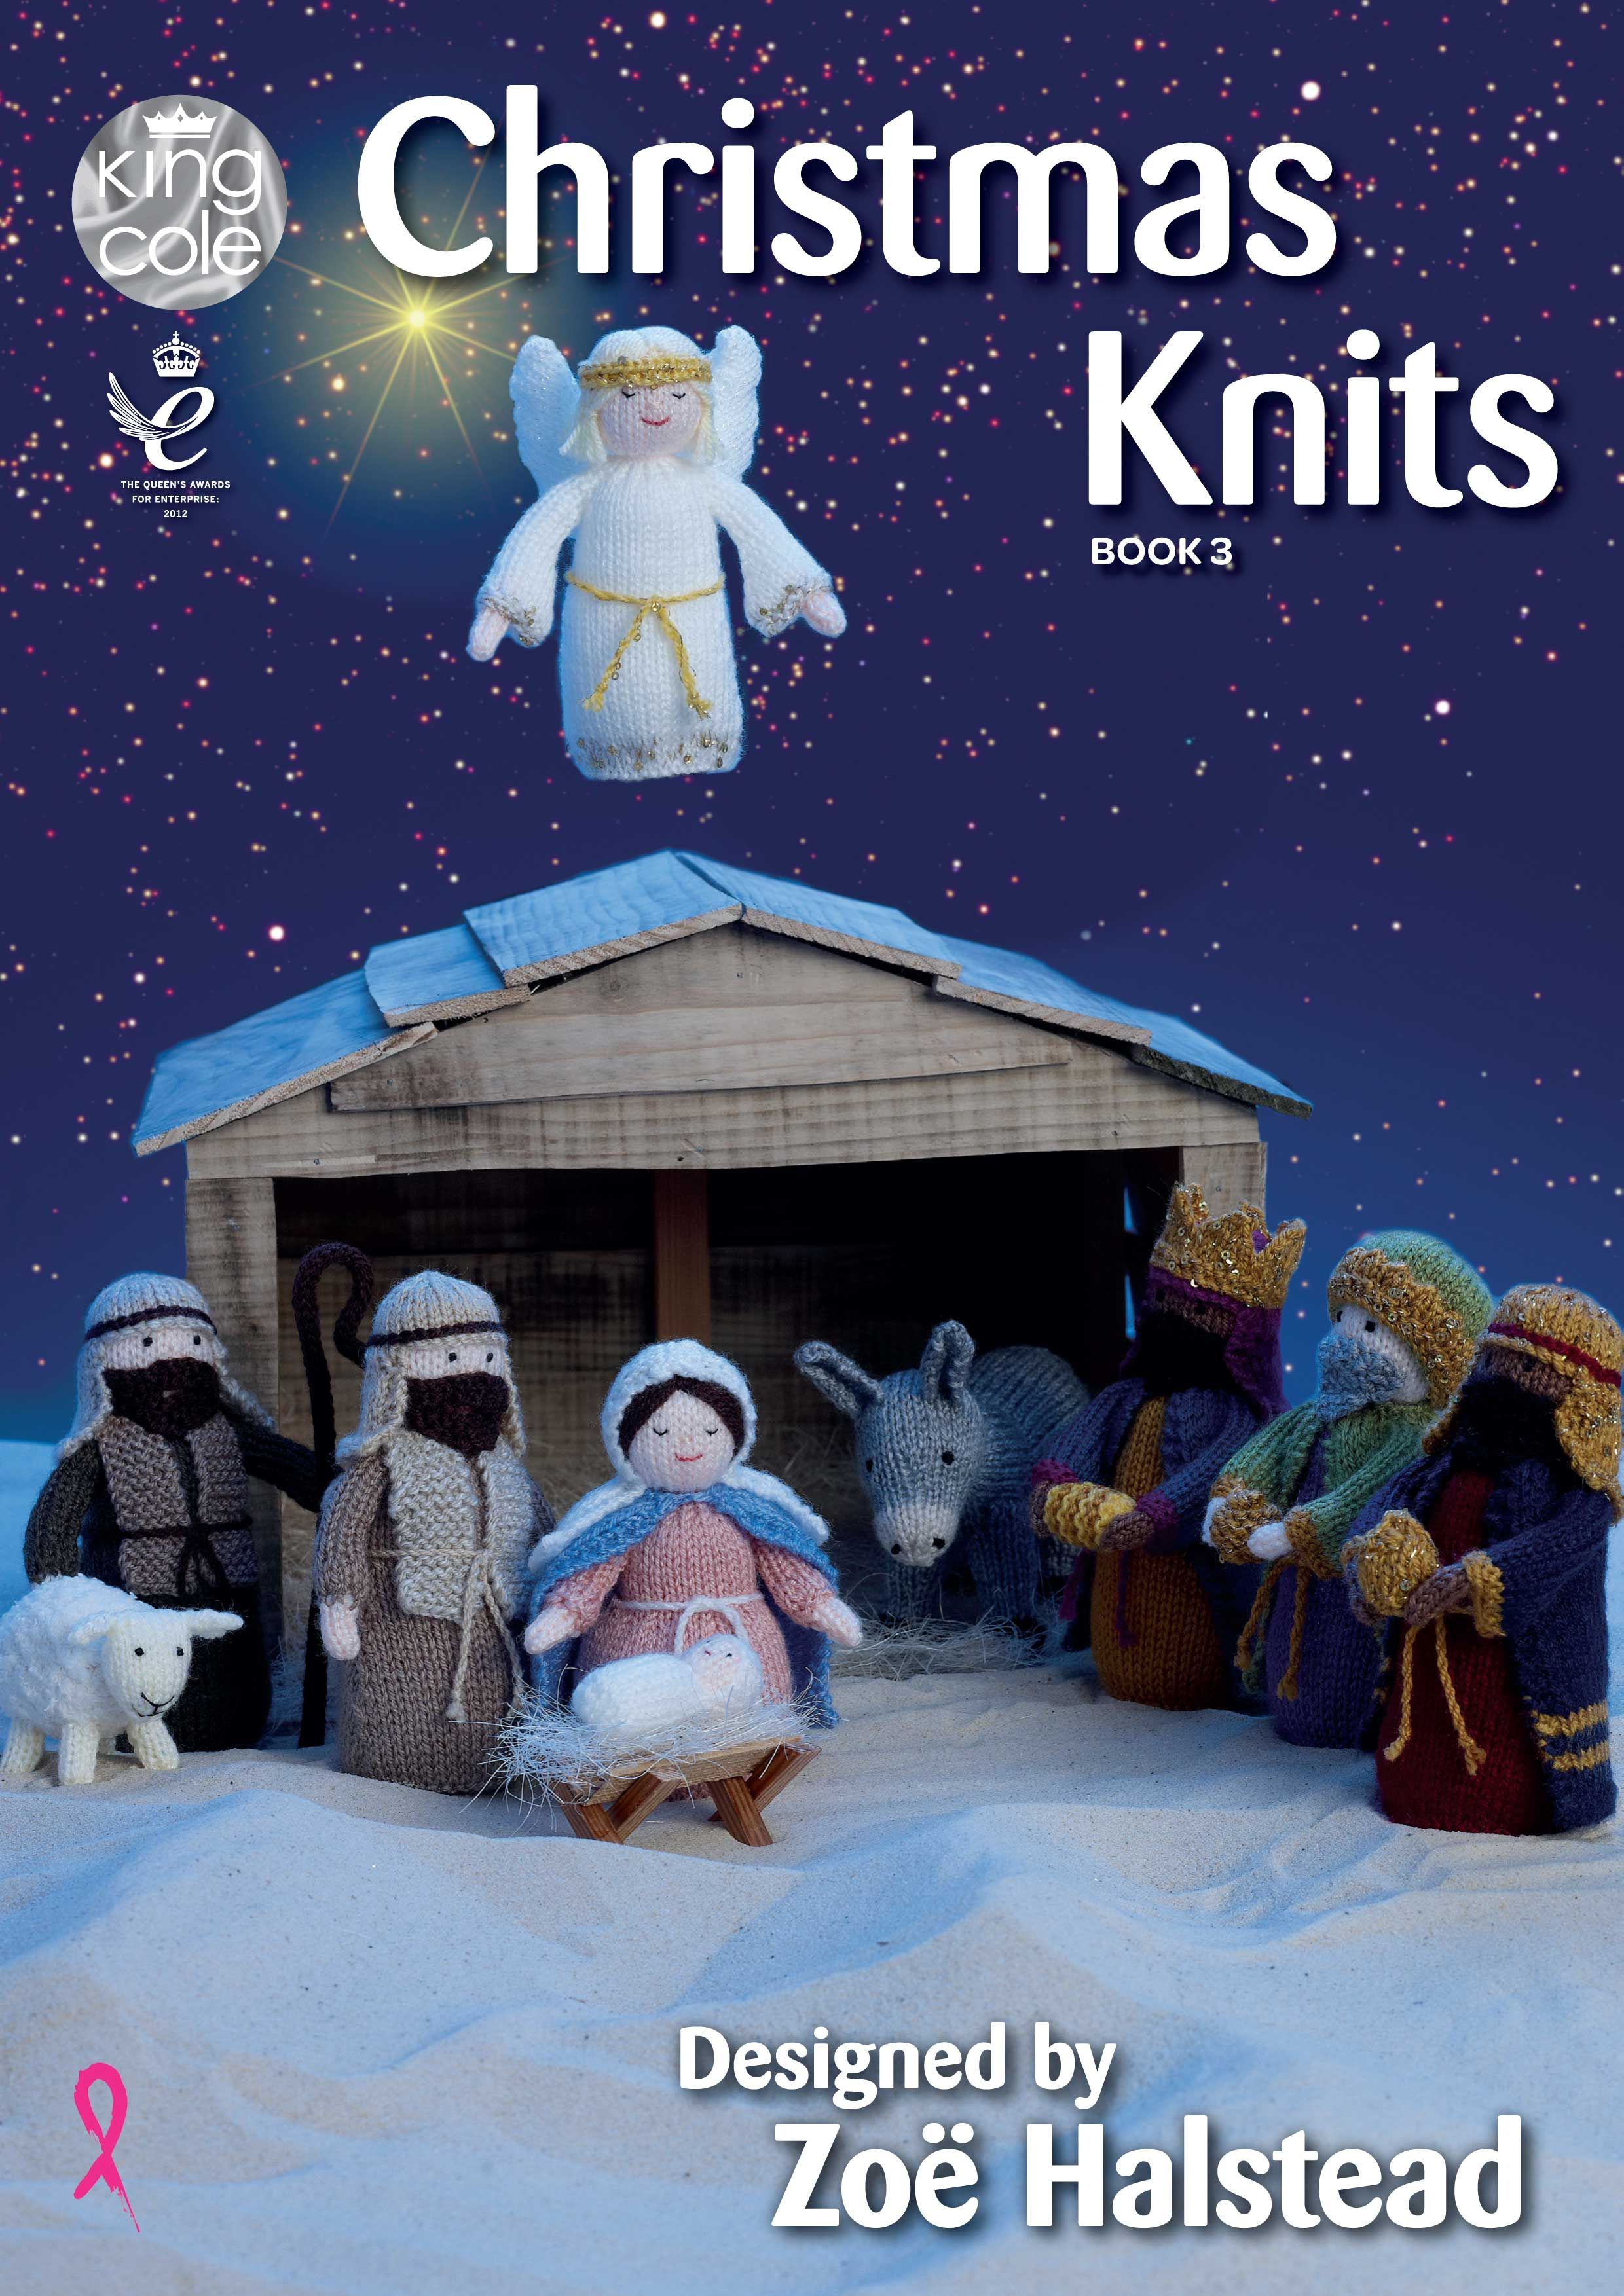 King Cole Christmas Knits Book 3 By Zoe Halstead Mary